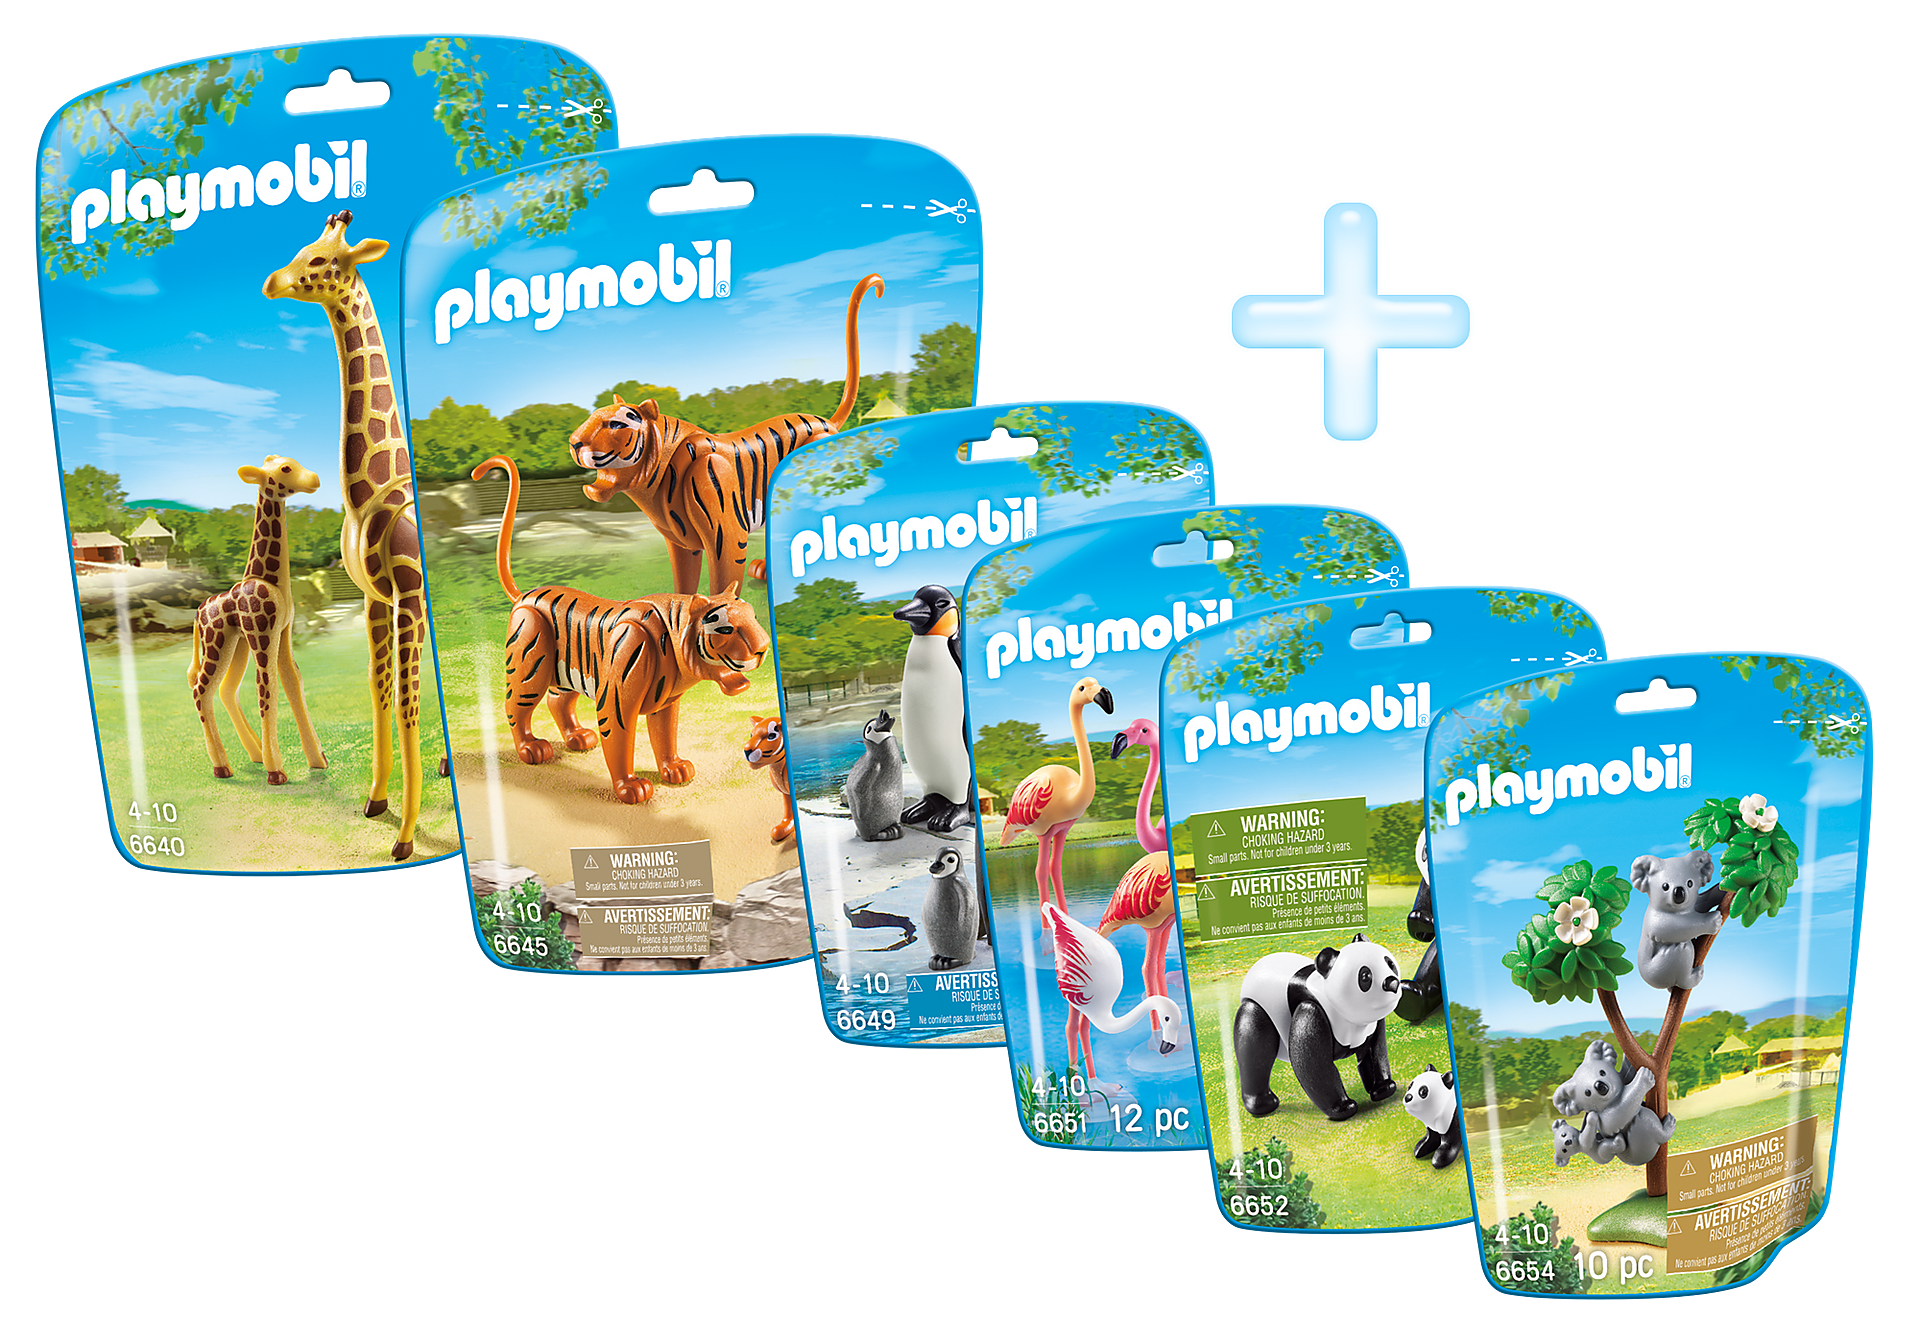 http://media.playmobil.com/i/playmobil/PM1907A_product_detail/Zoo Animals Bundle